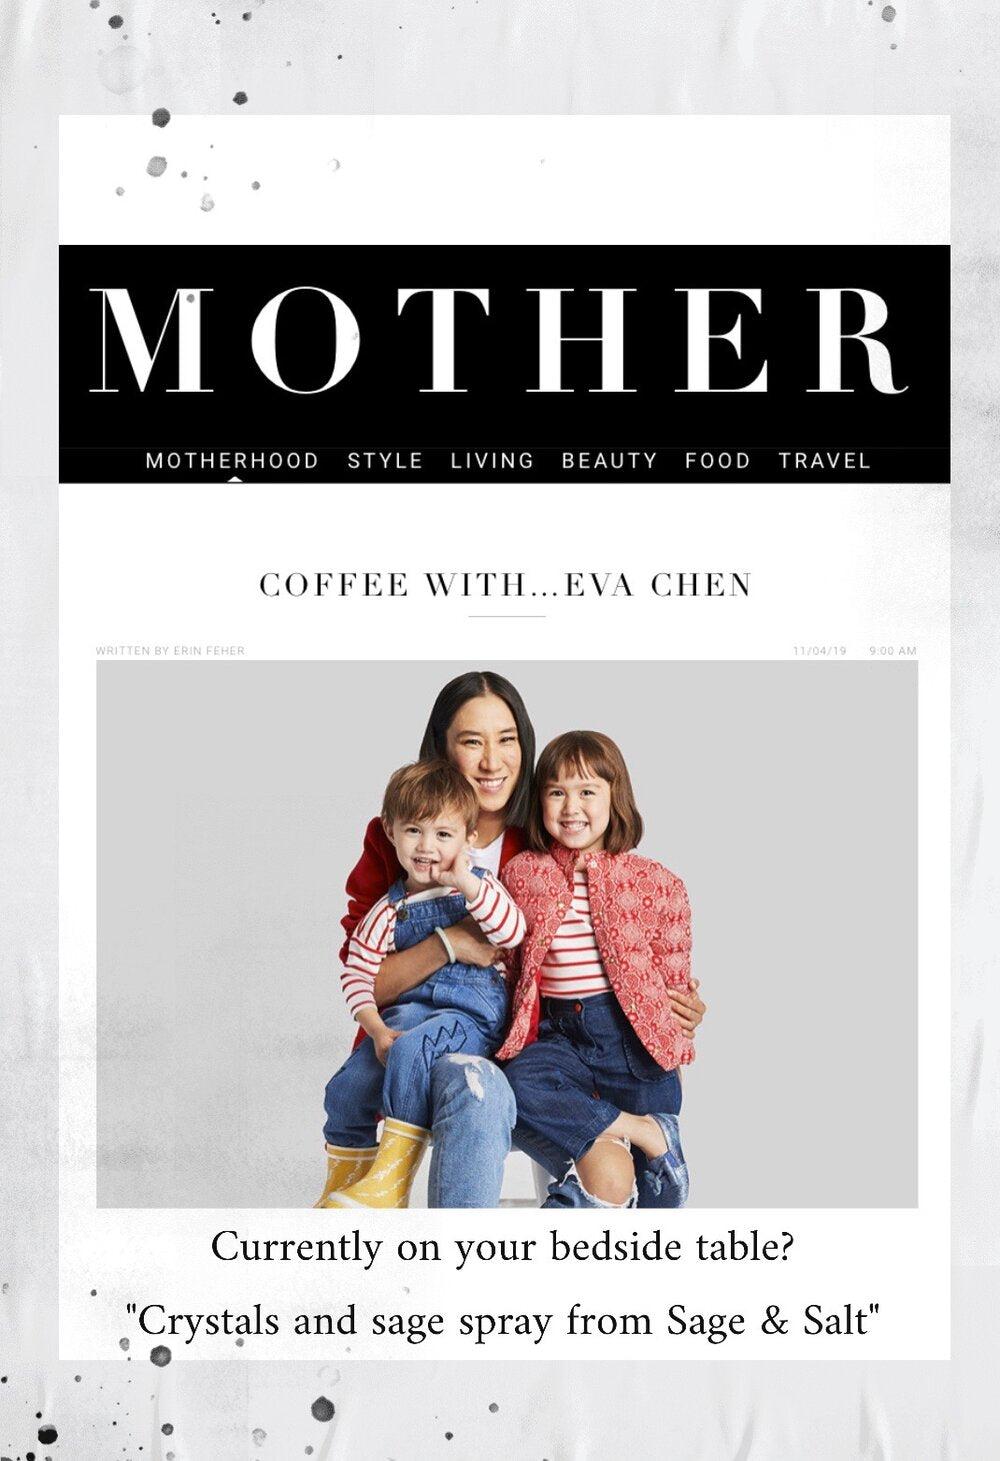 Director of fashion partnerships at Instagram and author Eva Chen gives Sage & Salt a shoutout in Mother Magazine. Thrilled that our Smokeless Smudge is on her nightstand.